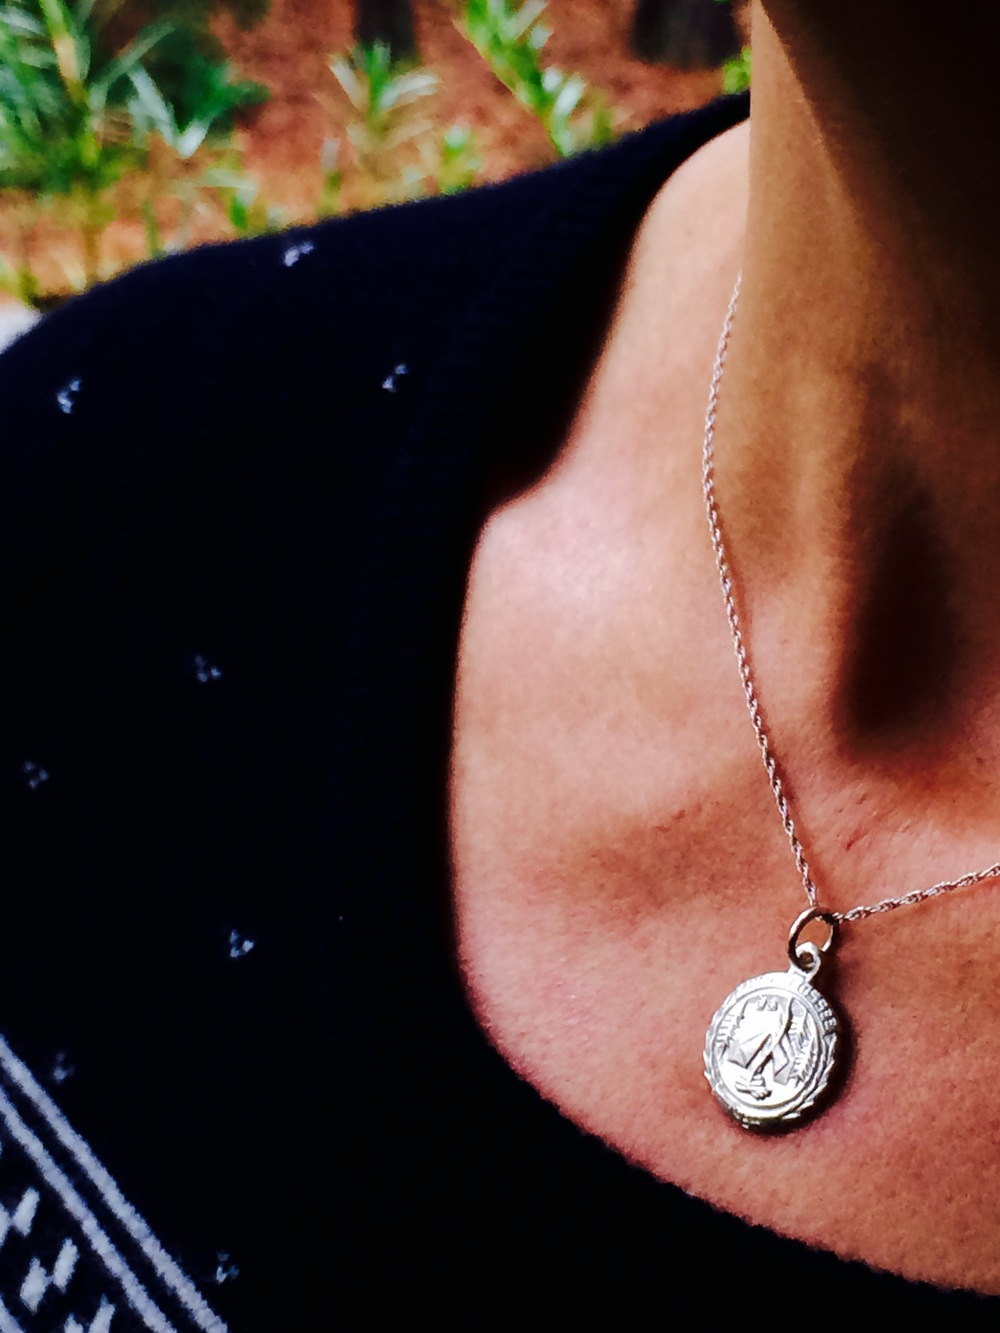 The 2014 version of my 1984 necklace. Love.